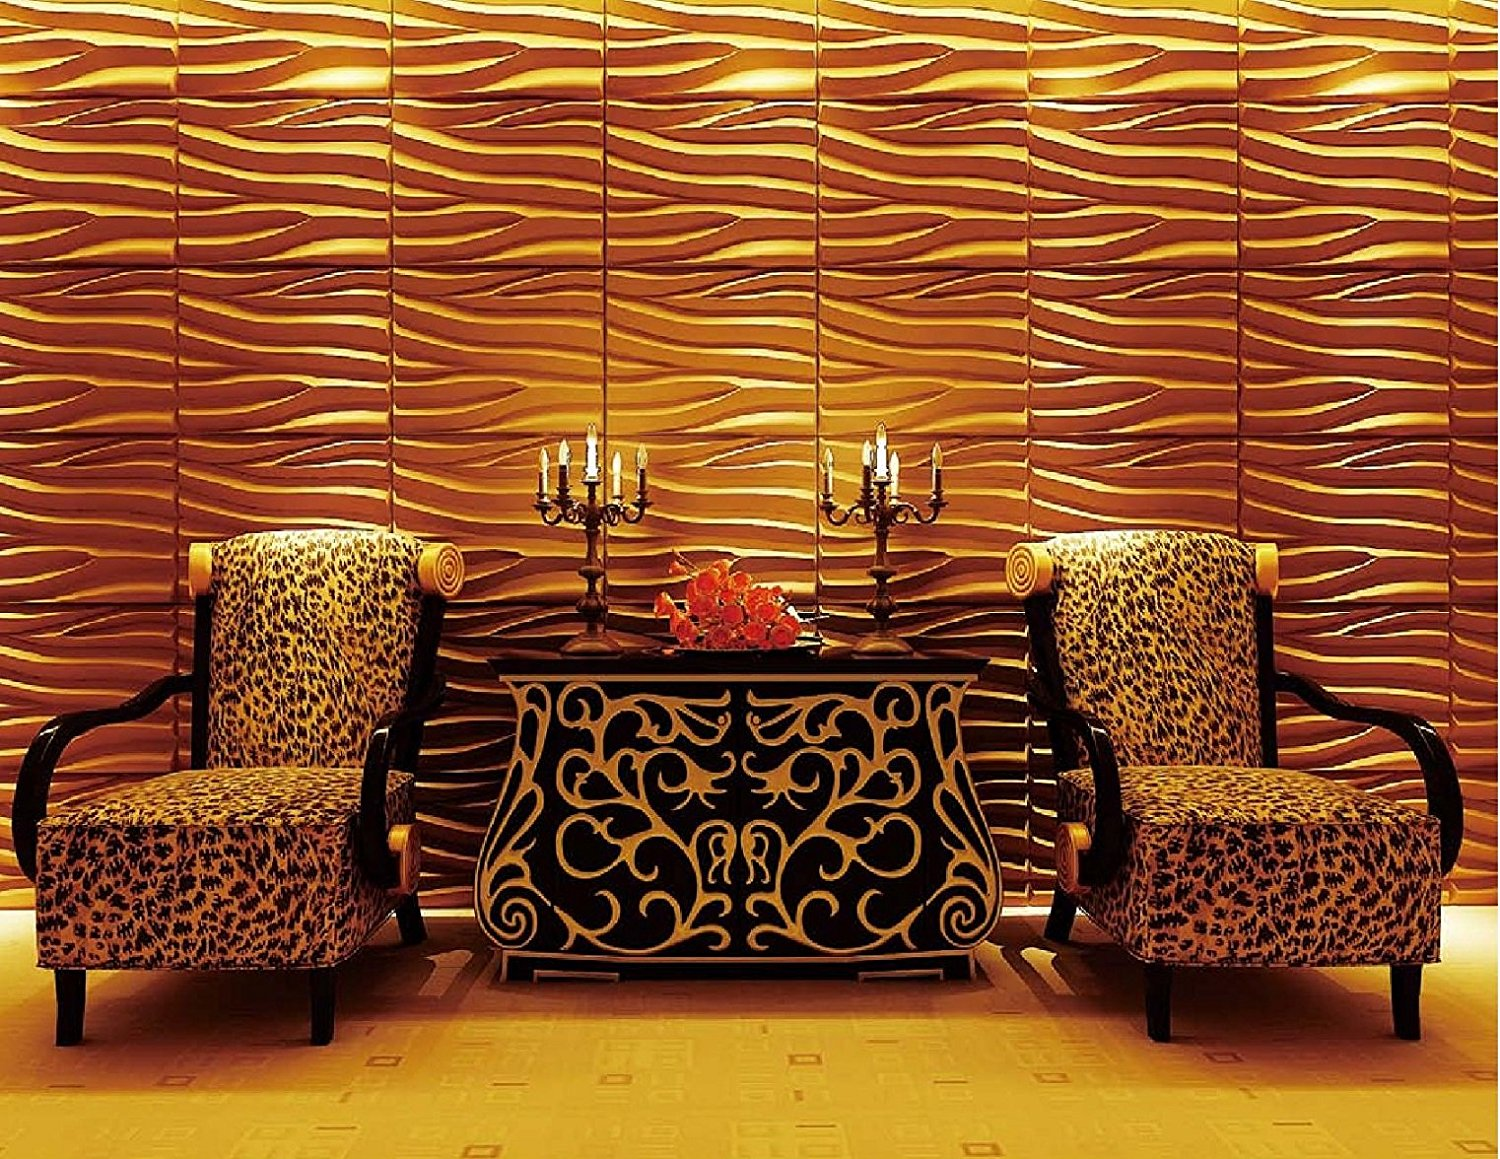 Affordable Home Innovations Modern Seawave 3d Wall Panels Eco-friendly 32 Sq Ft